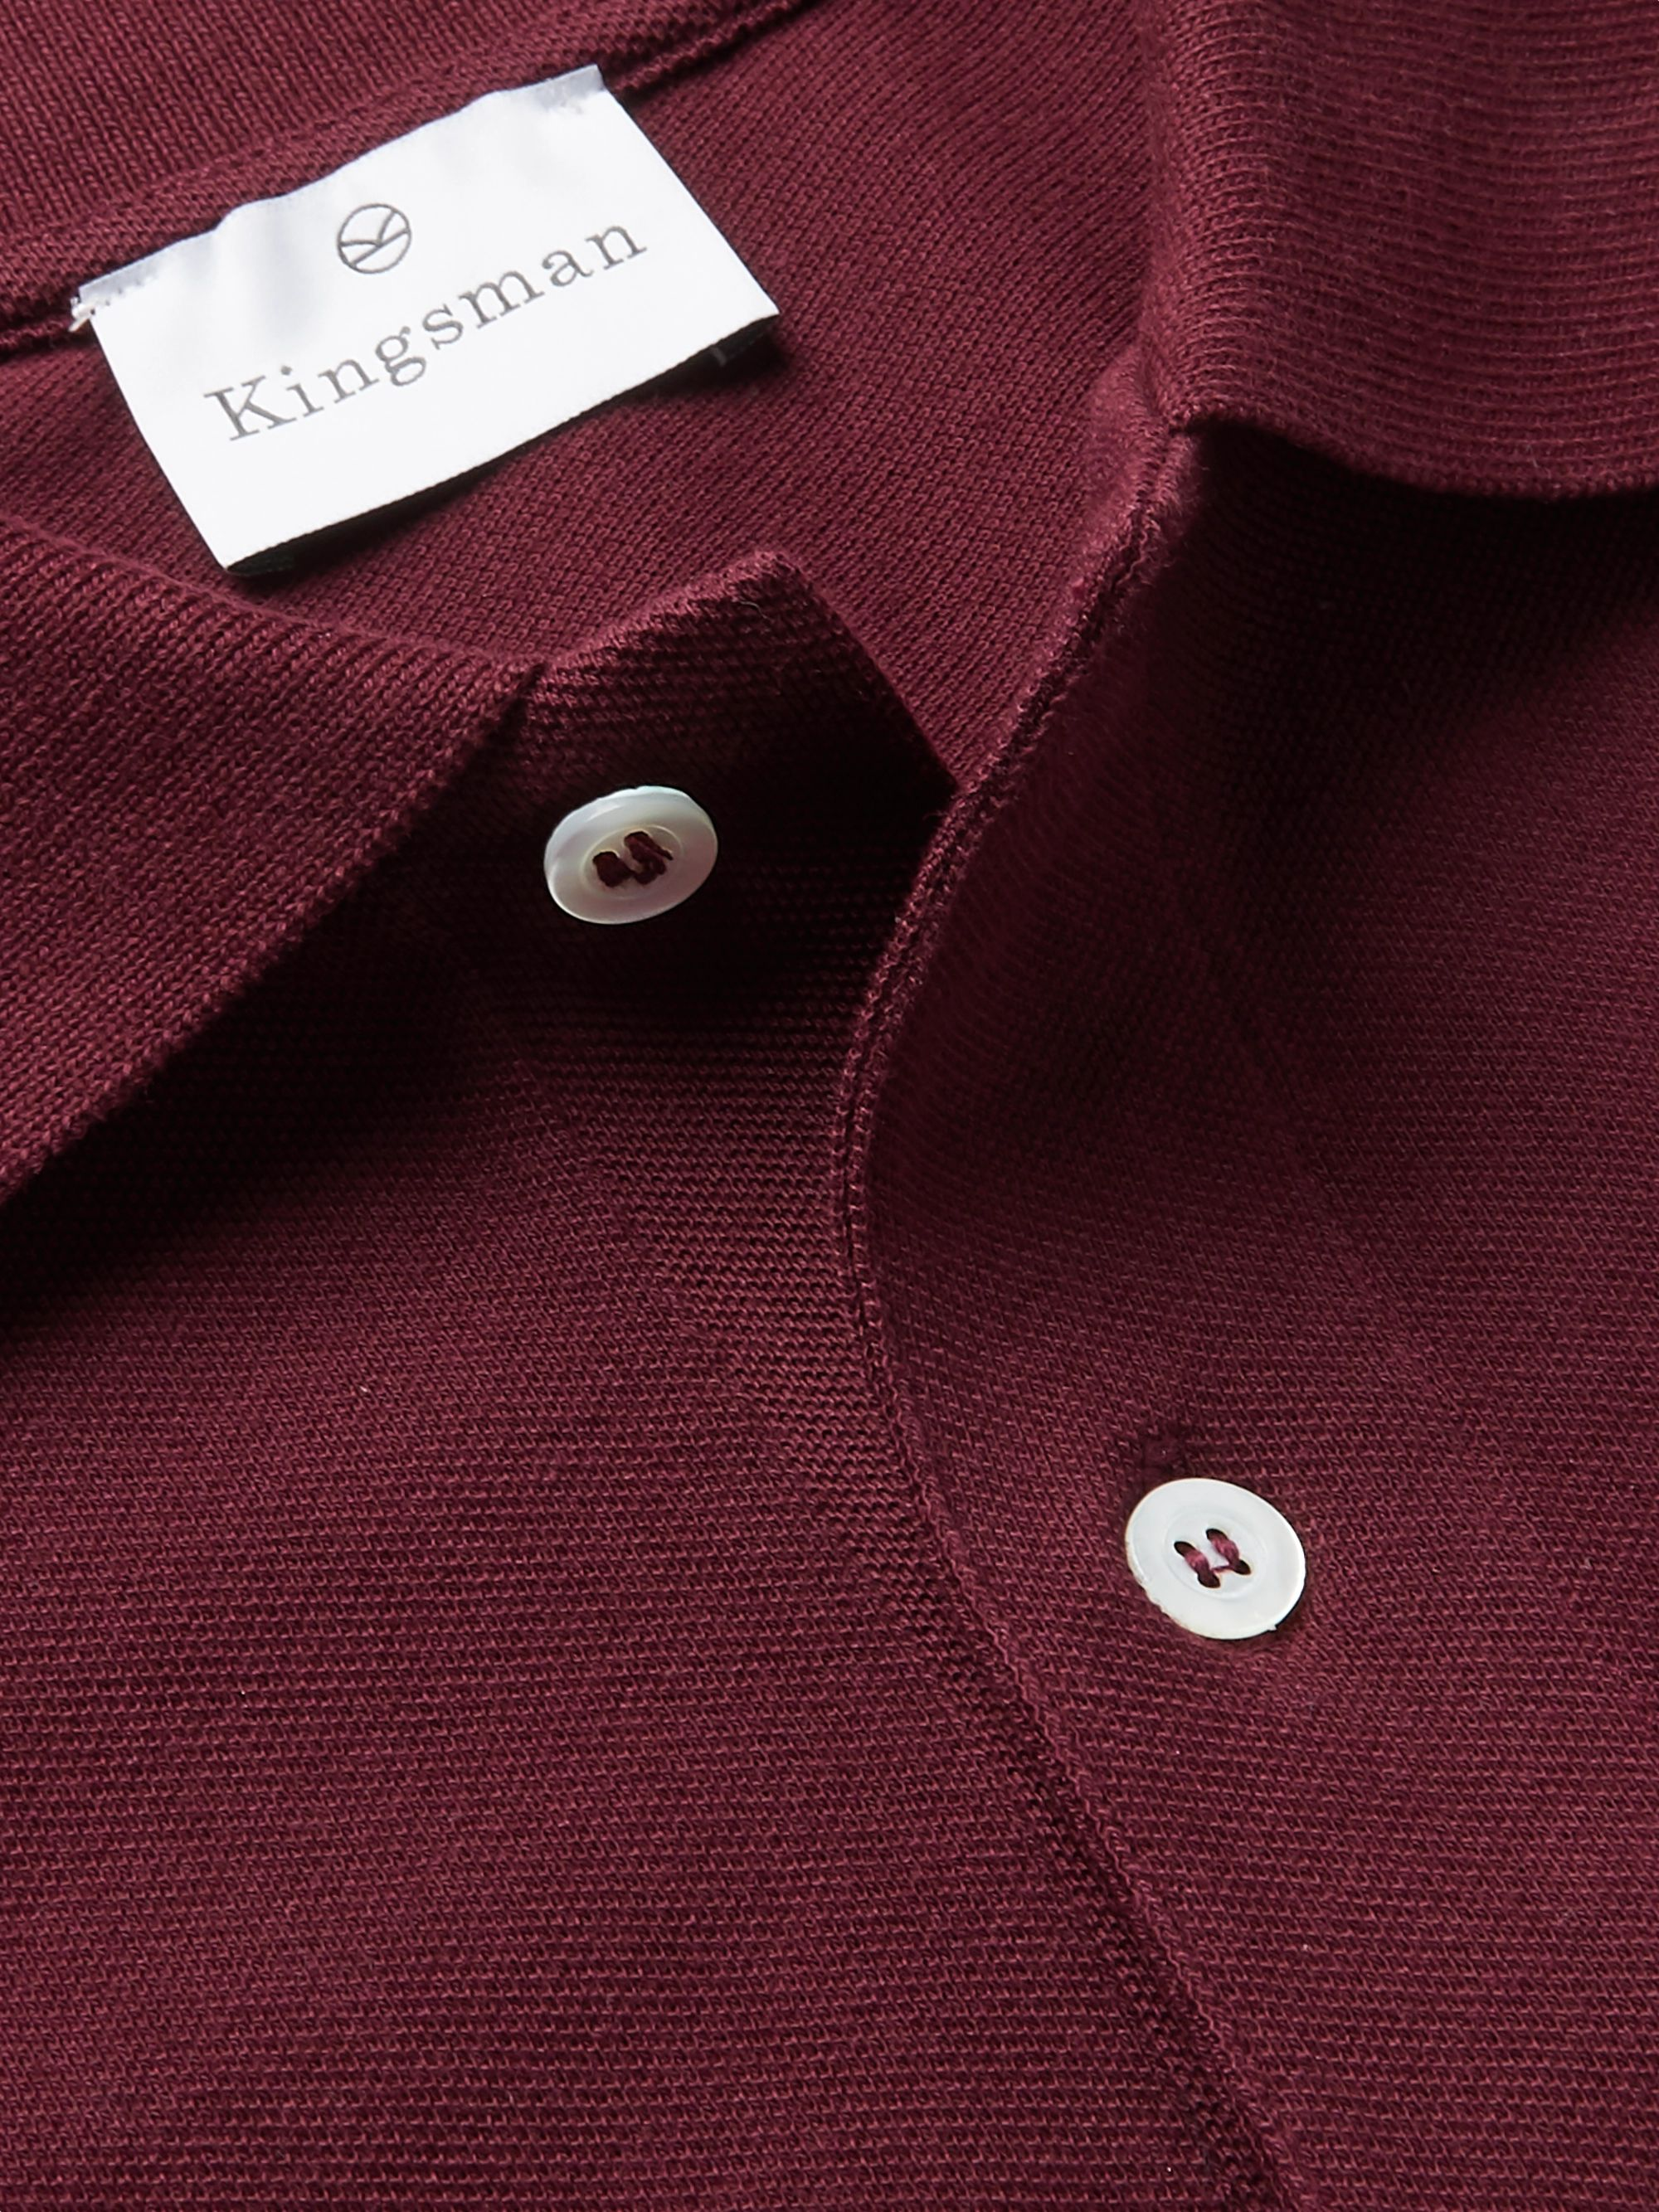 Kingsman Cotton-Piqué Polo Shirt